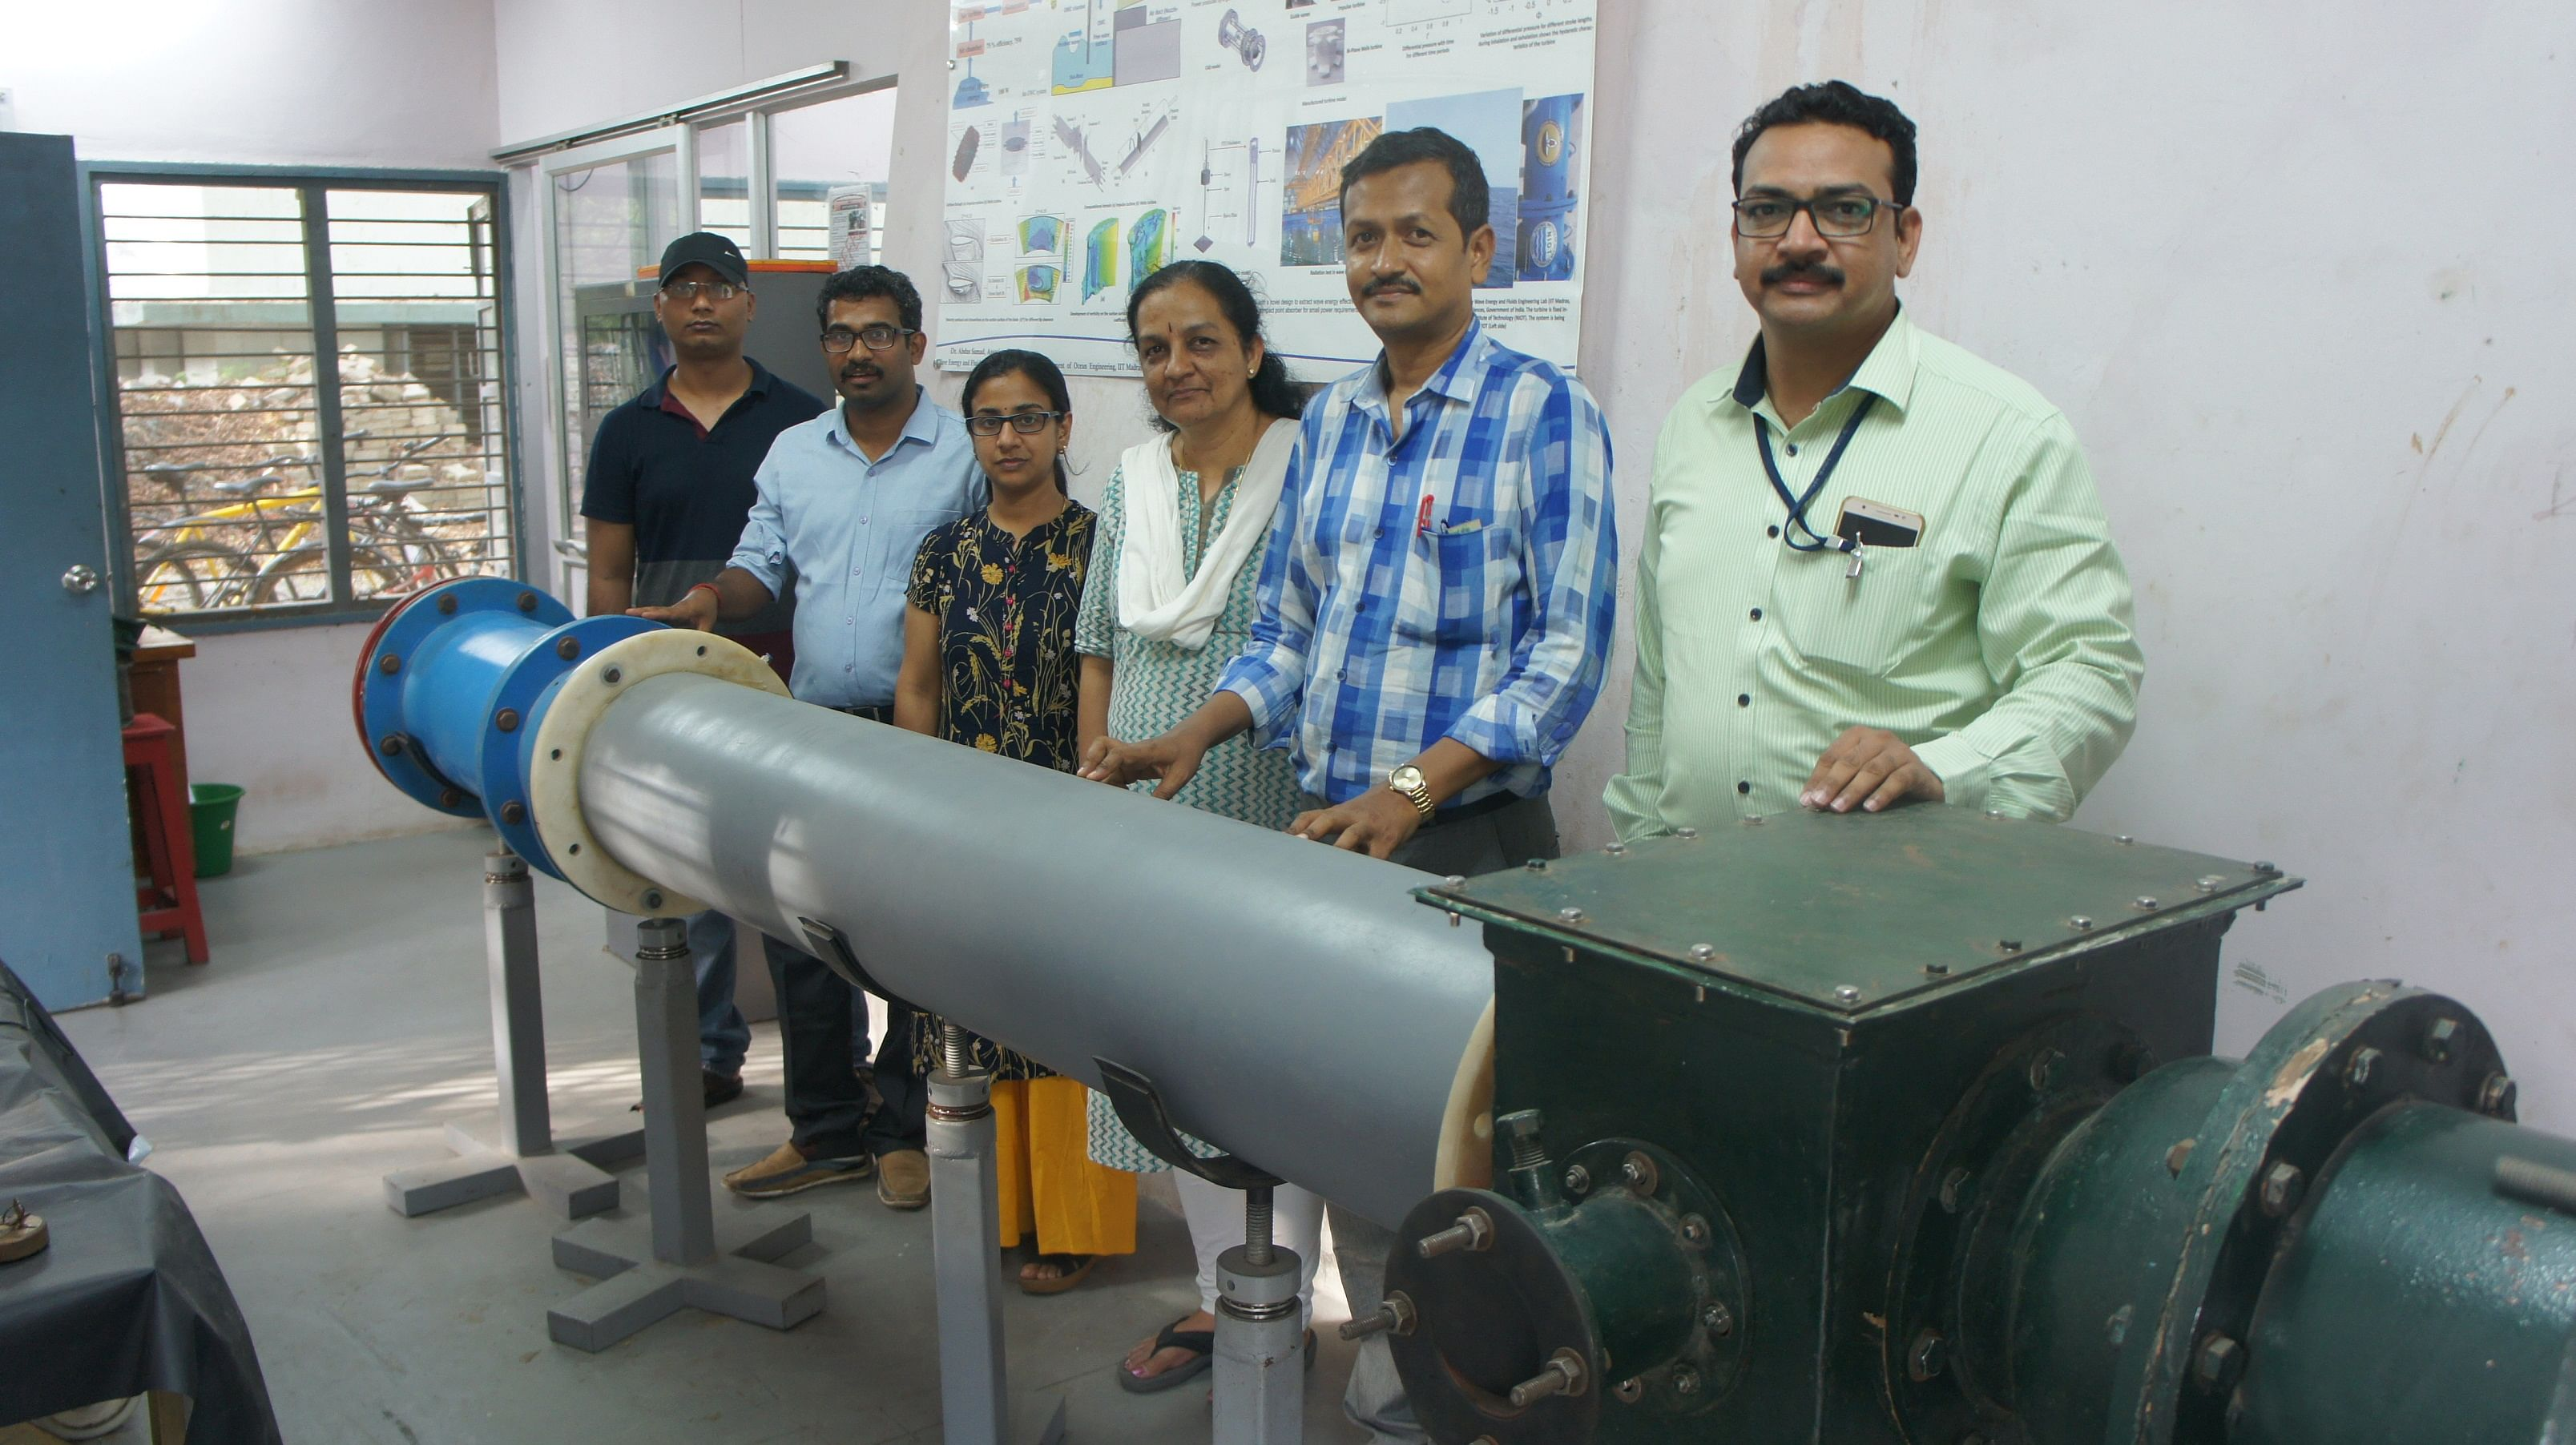 (From L-to-R) The research team Mr Ananth Narayan, Mr Biren Patnaik, Ms Suchithra Ravikumar, Dr Purnima Jalihal, Dr Abdus Samad and Mr Prasad Dudhgaonkar.